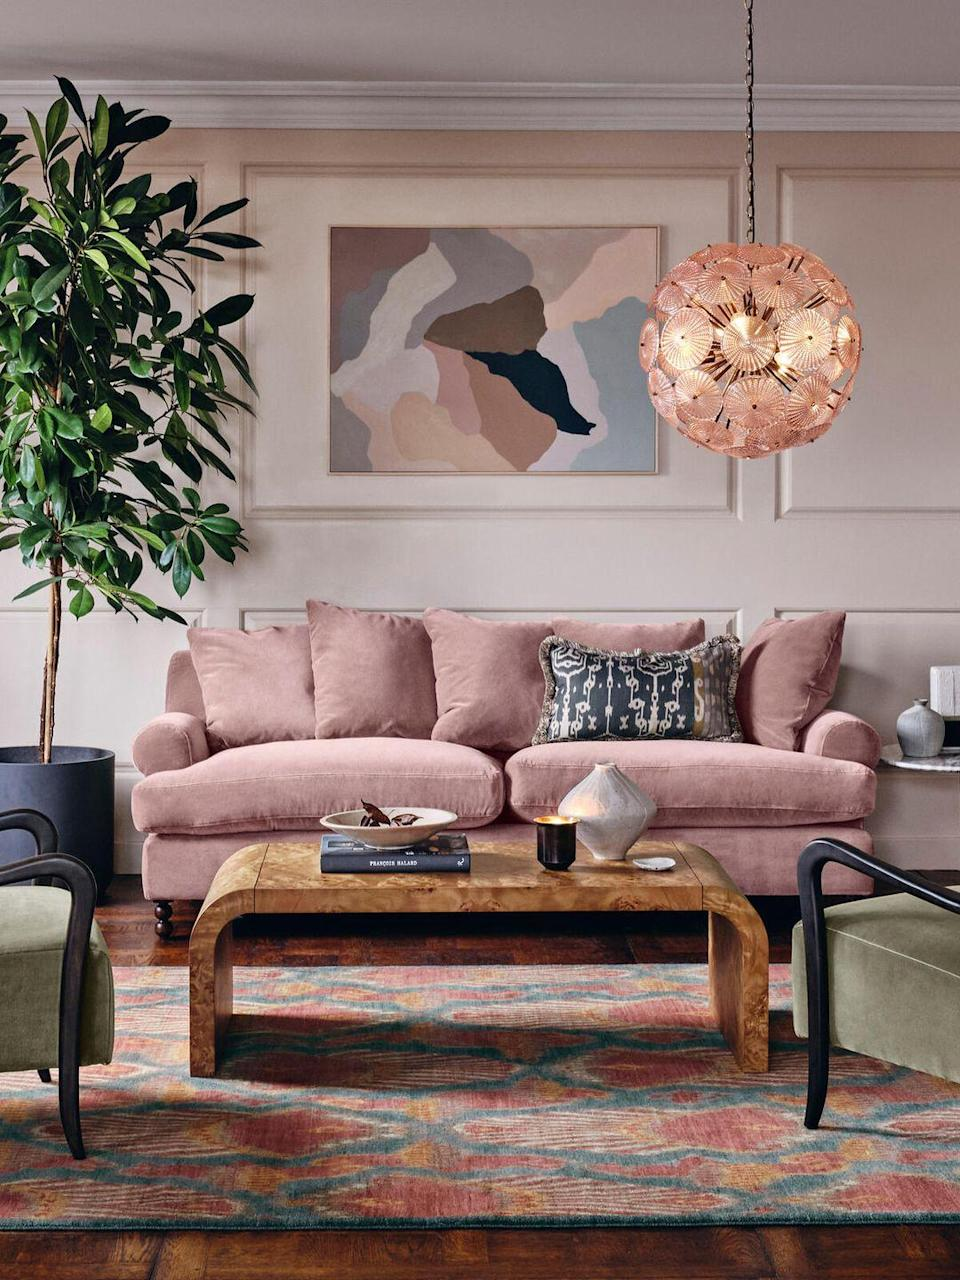 """<p>A surprising second place. Pink was the second most popular colour for sofas in 2021. Requiring a keener eye than simple grey to avoid an overly saccharine outcome, rich or chalky shades of pink in tactile fabrics – a textured wool or tweed – can be a versatile and sophisticated choice. <br></p><p>Pictured: <a href=""""https://go.redirectingat.com?id=127X1599956&url=https%3A%2F%2Fwww.sohohome.com%2Fproducts%2Faudrey-3-seater-sofa%2F74552910&sref=https%3A%2F%2Fwww.countryliving.com%2Fuk%2Fhomes-interiors%2Finteriors%2Fg37335592%2Fmost-popular-sofa-colours%2F"""" rel=""""nofollow noopener"""" target=""""_blank"""" data-ylk=""""slk:Audrey 3-Seater Sofa at Soho Home"""" class=""""link rapid-noclick-resp"""">Audrey 3-Seater Sofa at Soho Home</a></p>"""